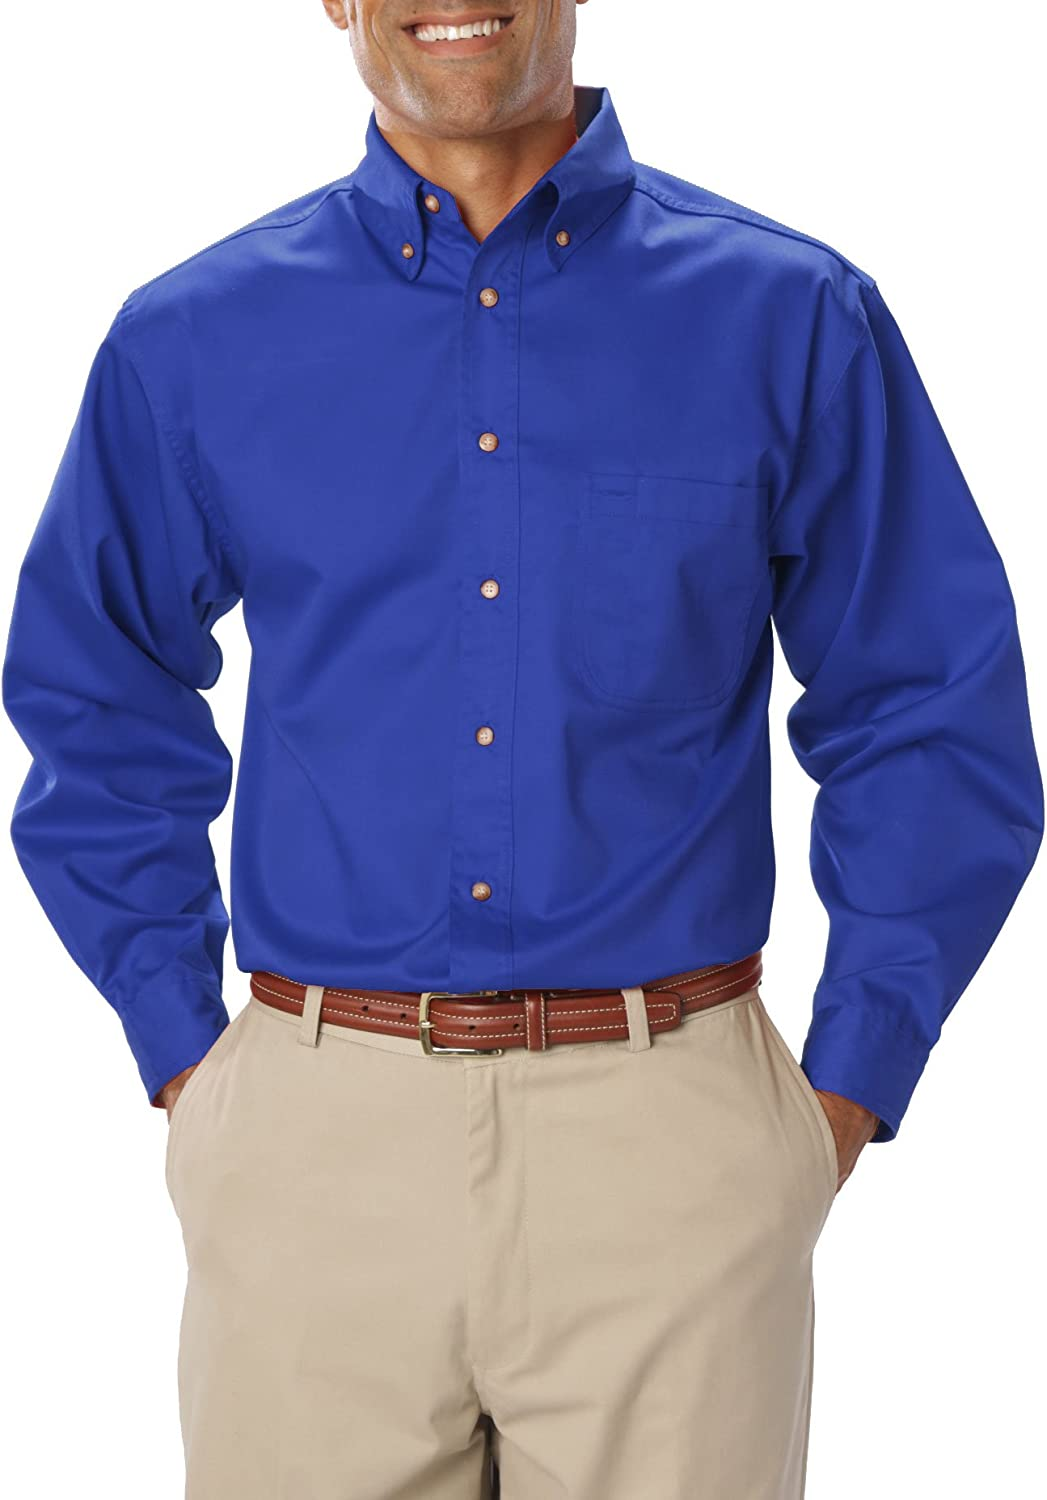 Blue Generation BG7217 Mens Long Sleeve Teflon Treated Twill